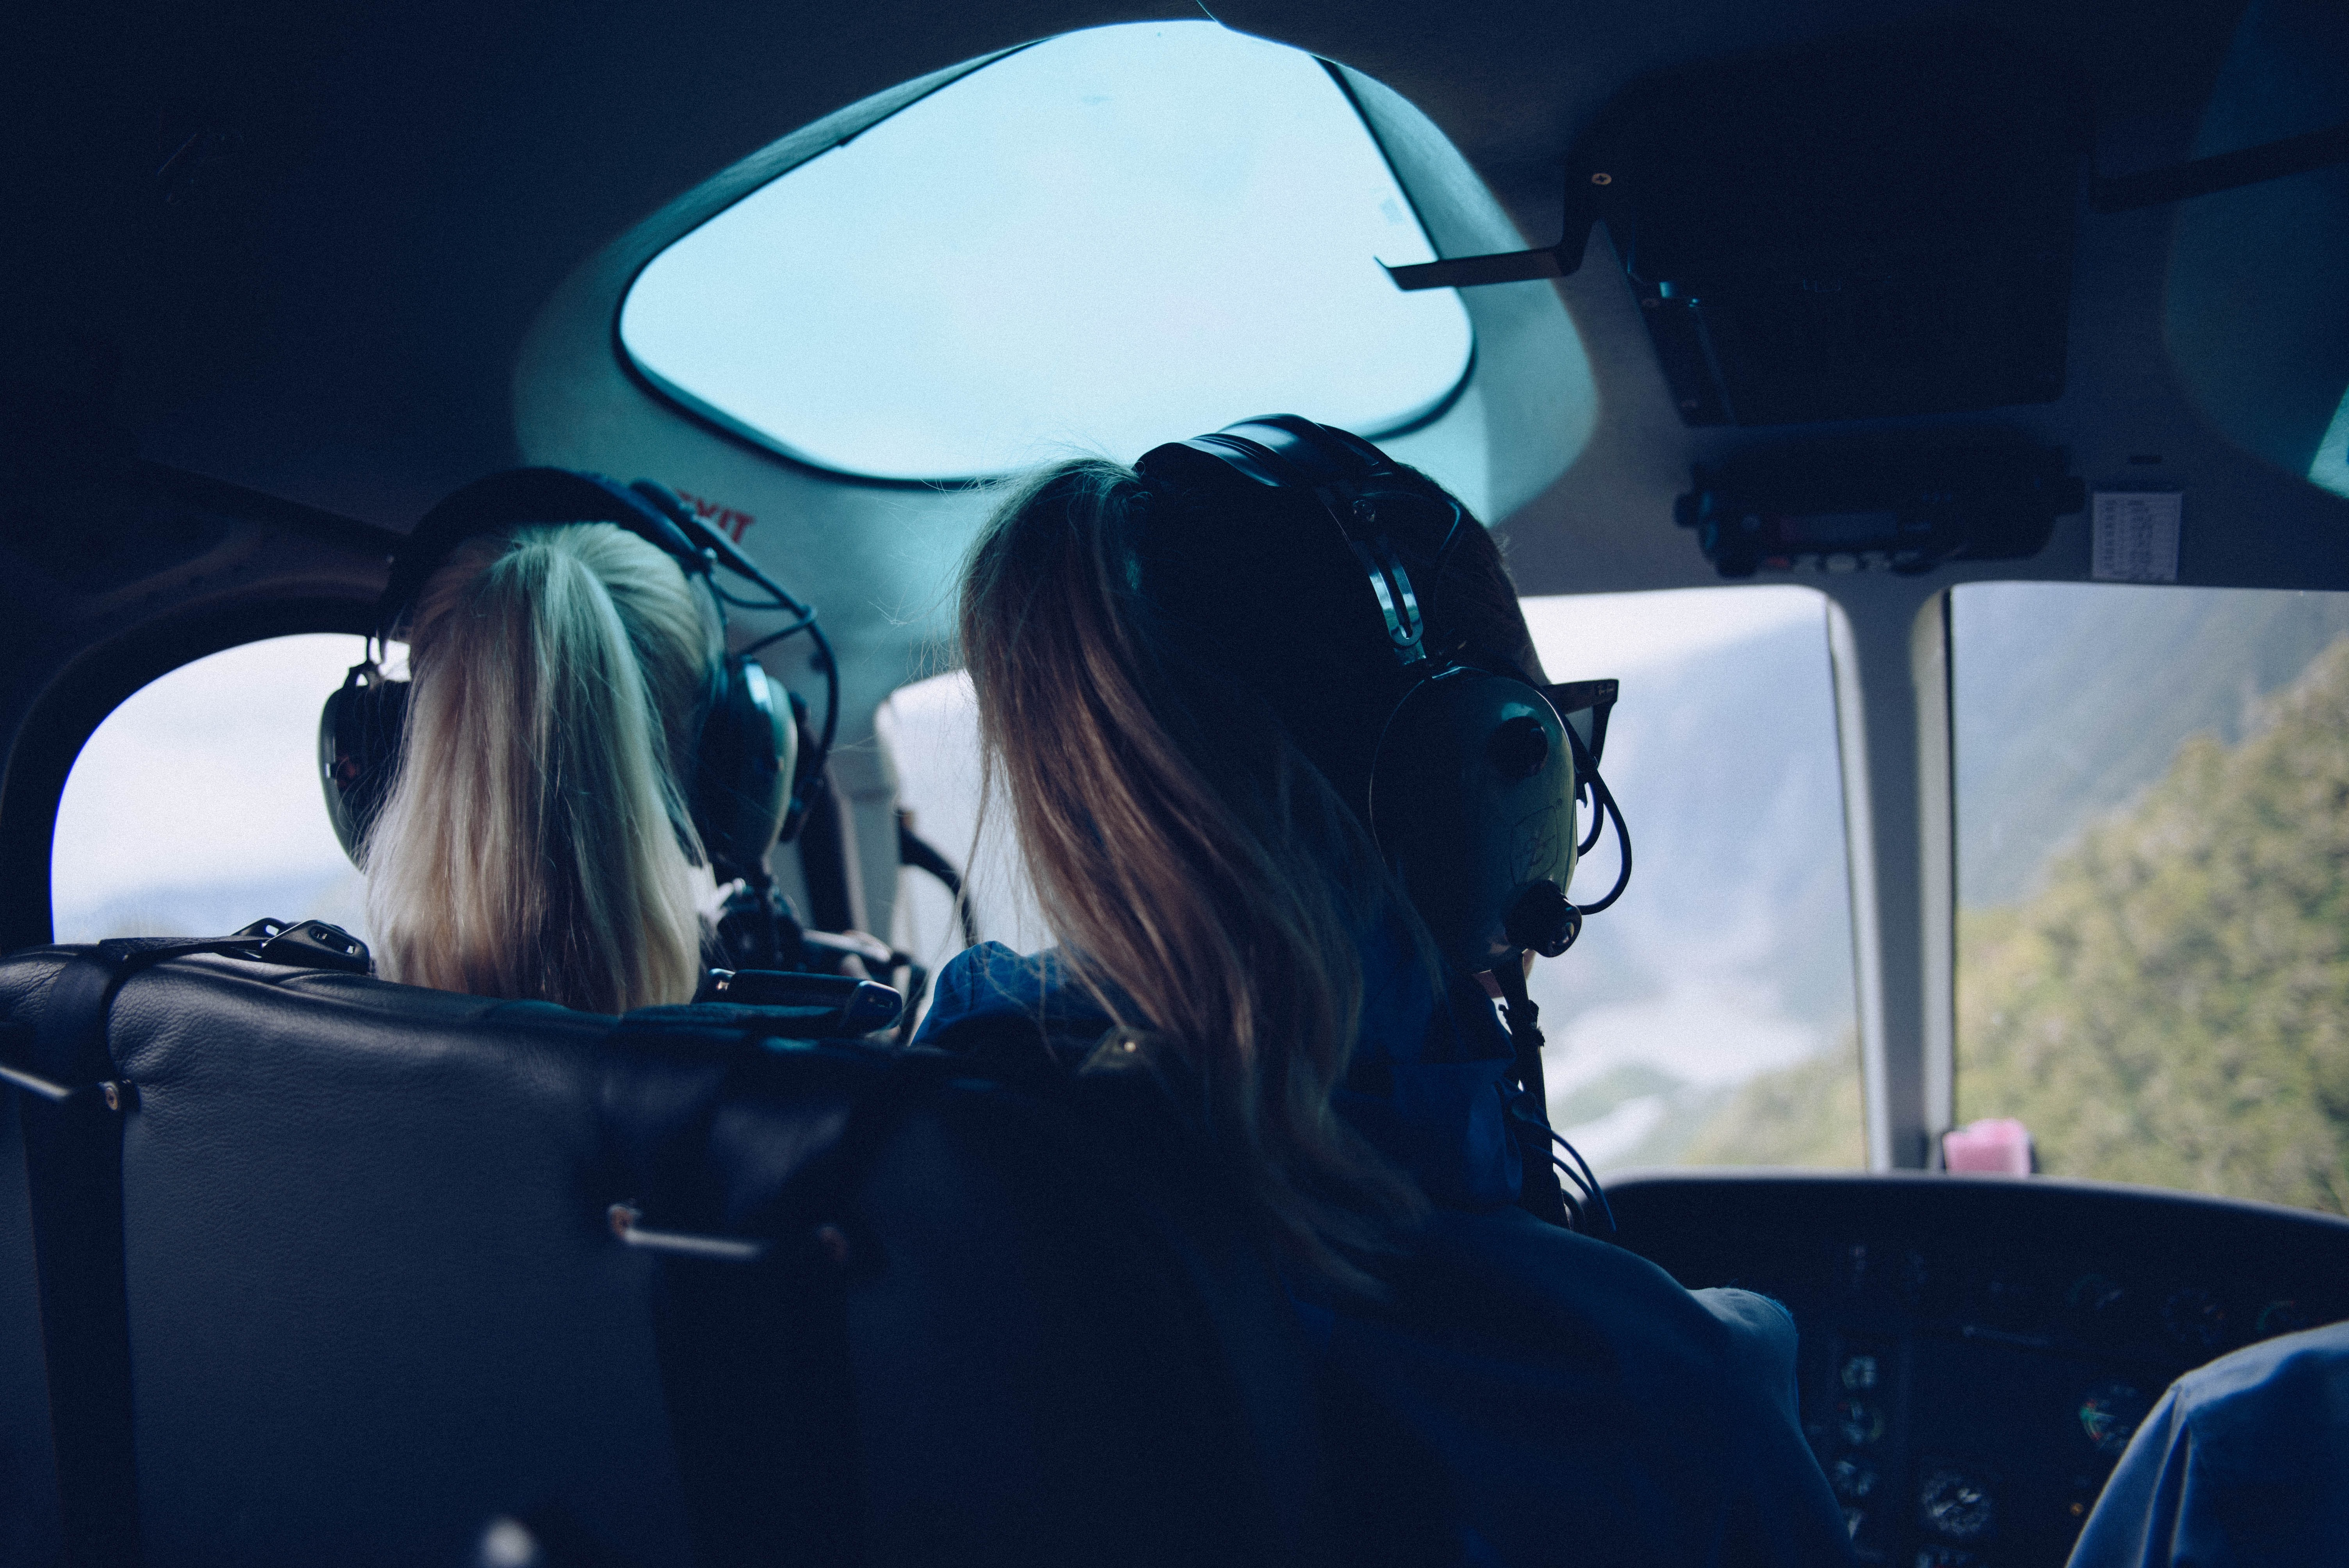 two woman sitting inside helicopter using headphones